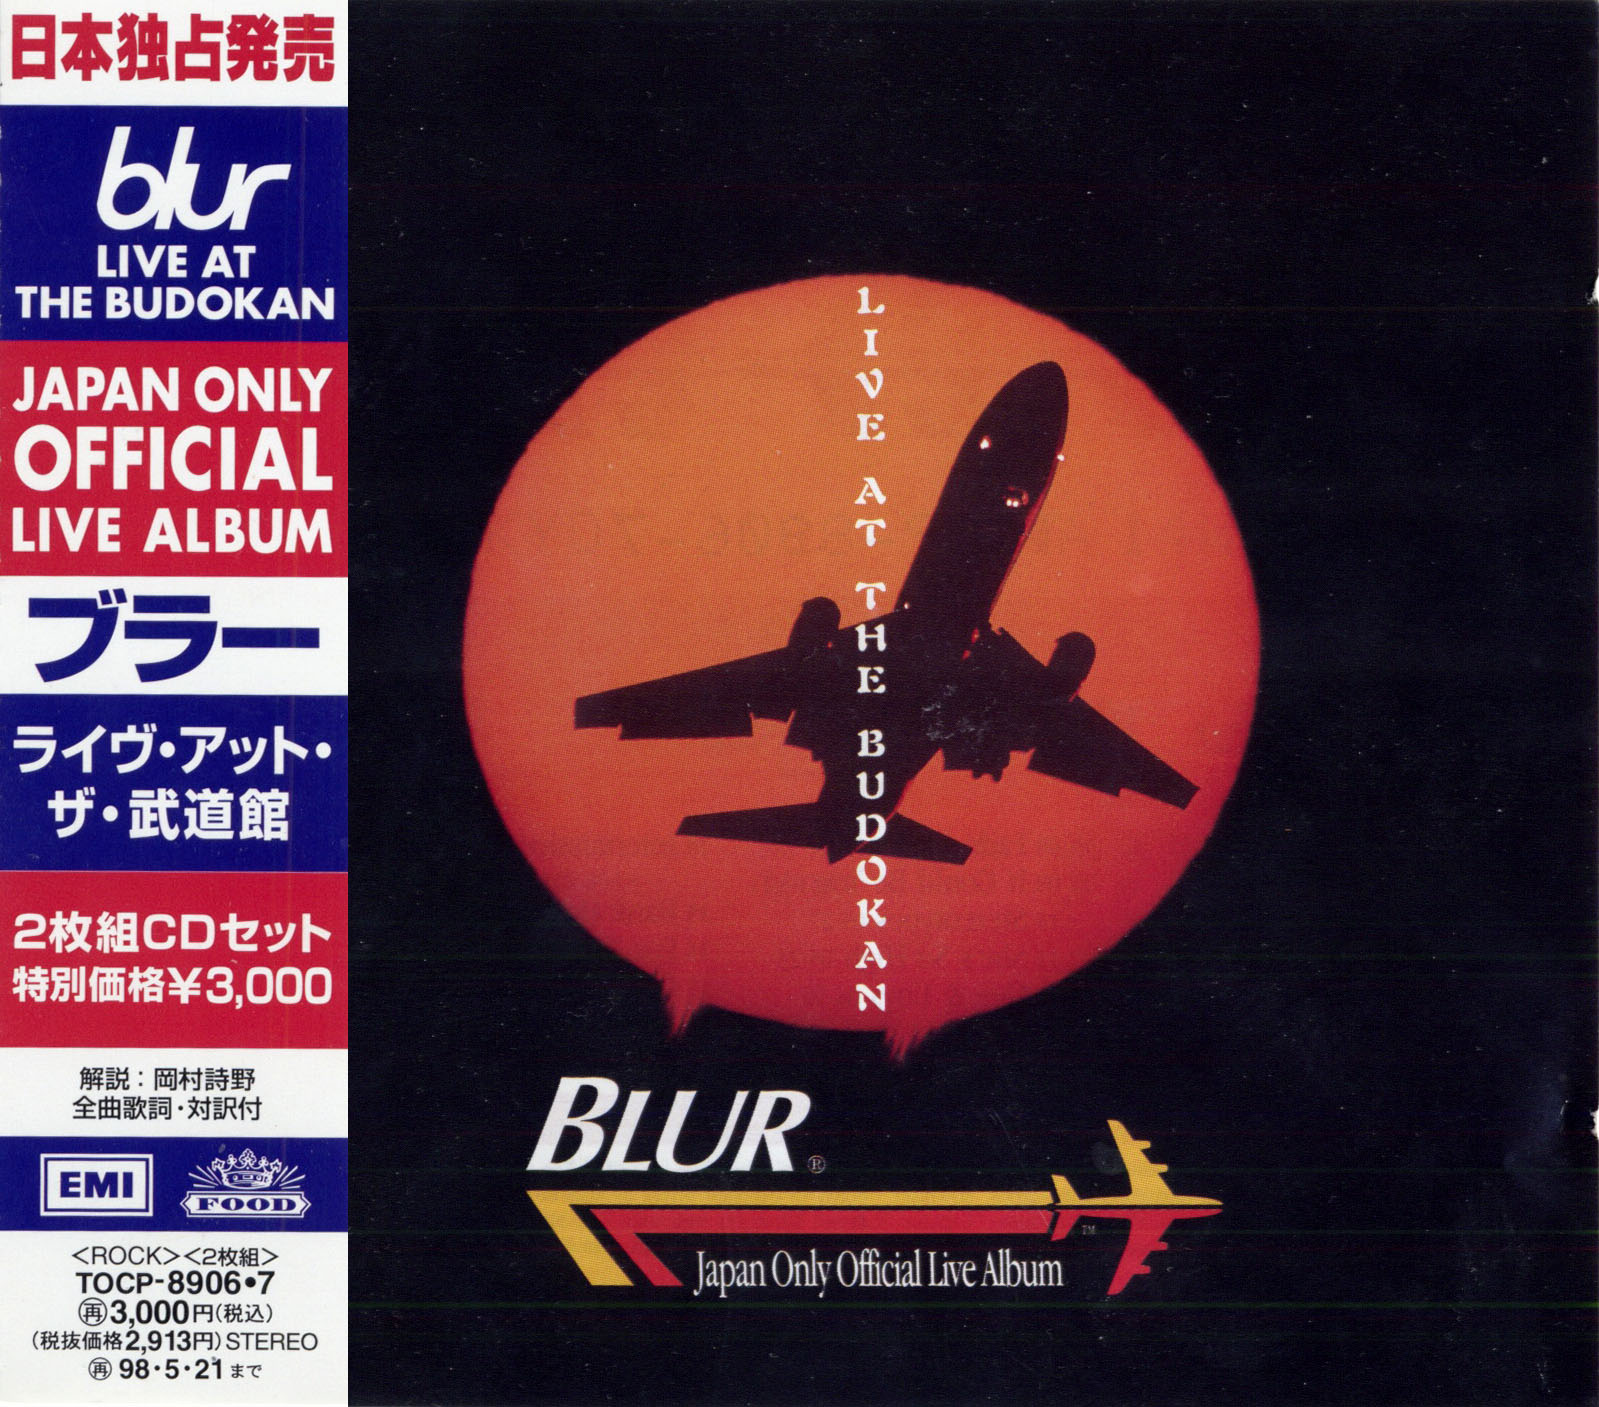 Blur – Complete Studio Albums Collection 1991-2003 [Japanese Releases] 20 CD [Re-Up]